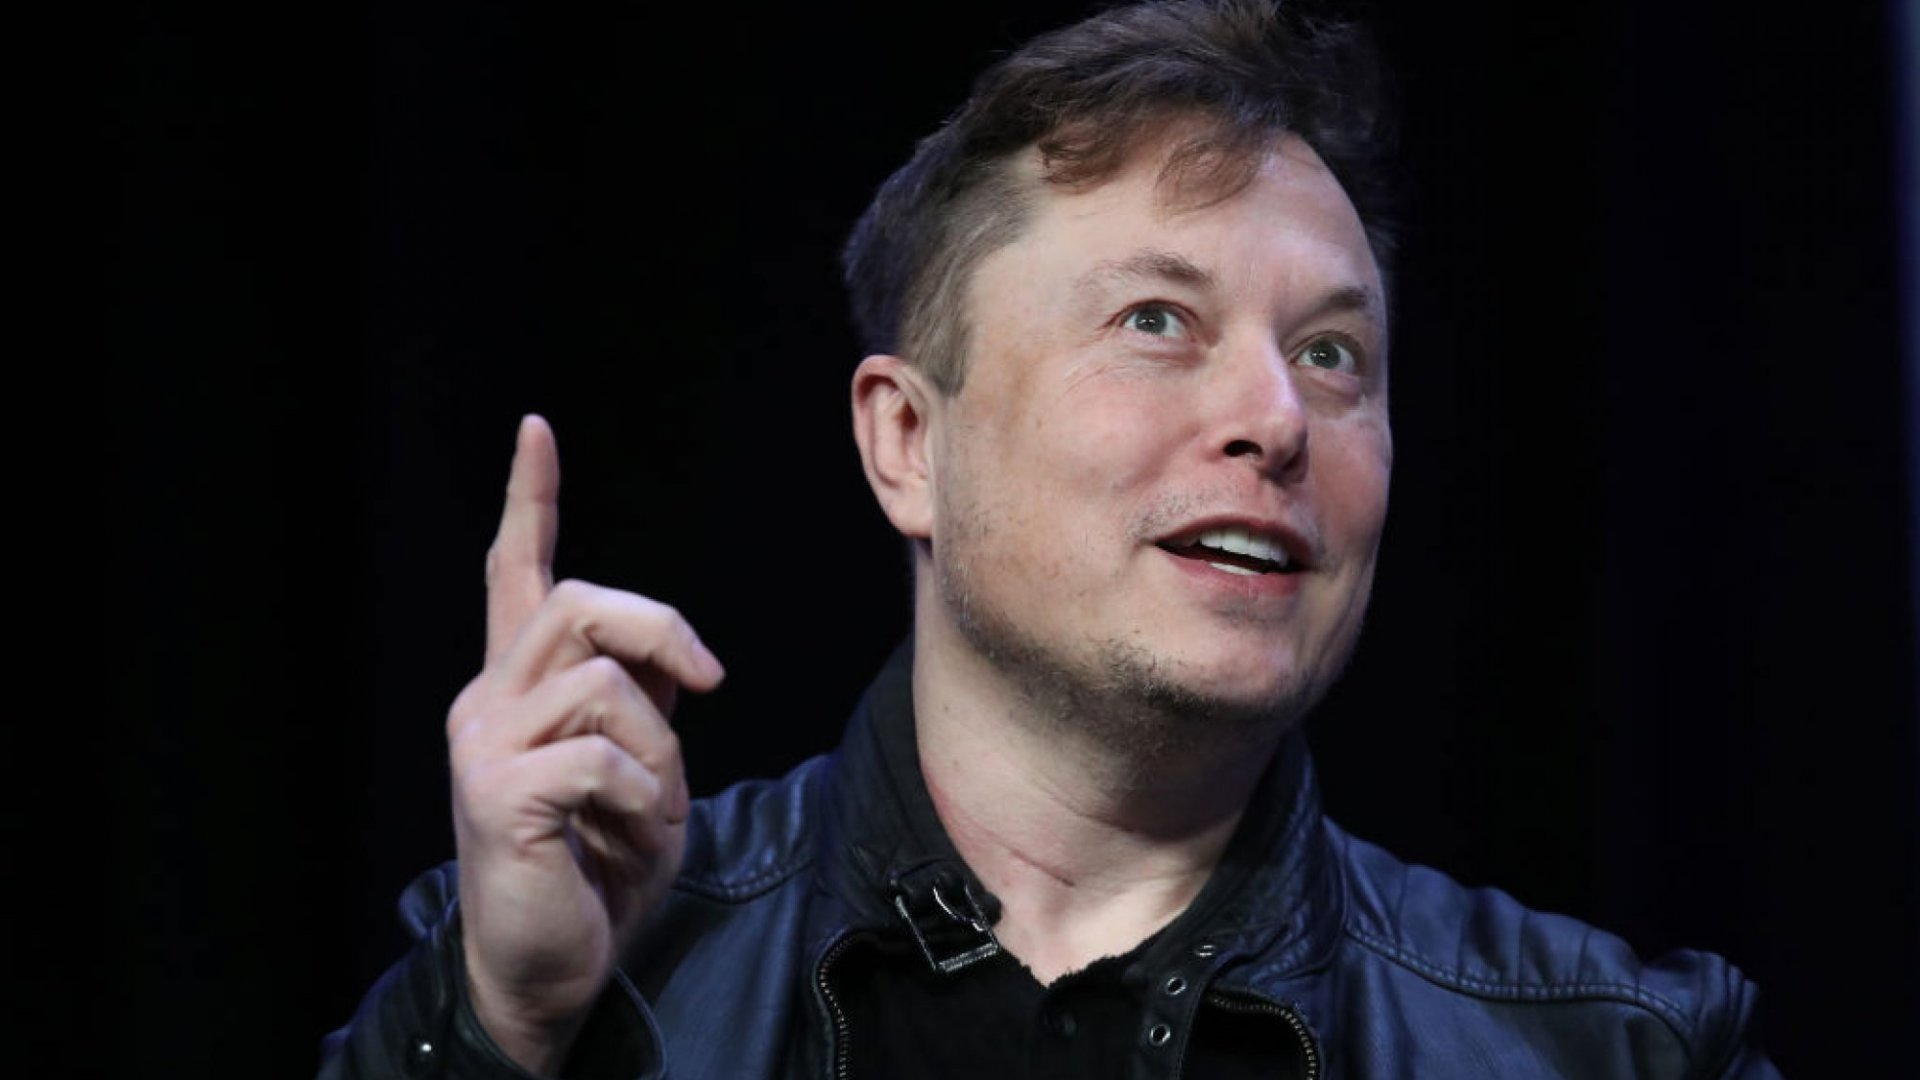 Elon Musk Tried to Sell Tesla to Apple. Why Tim Cook Wouldn't Take the Meeting